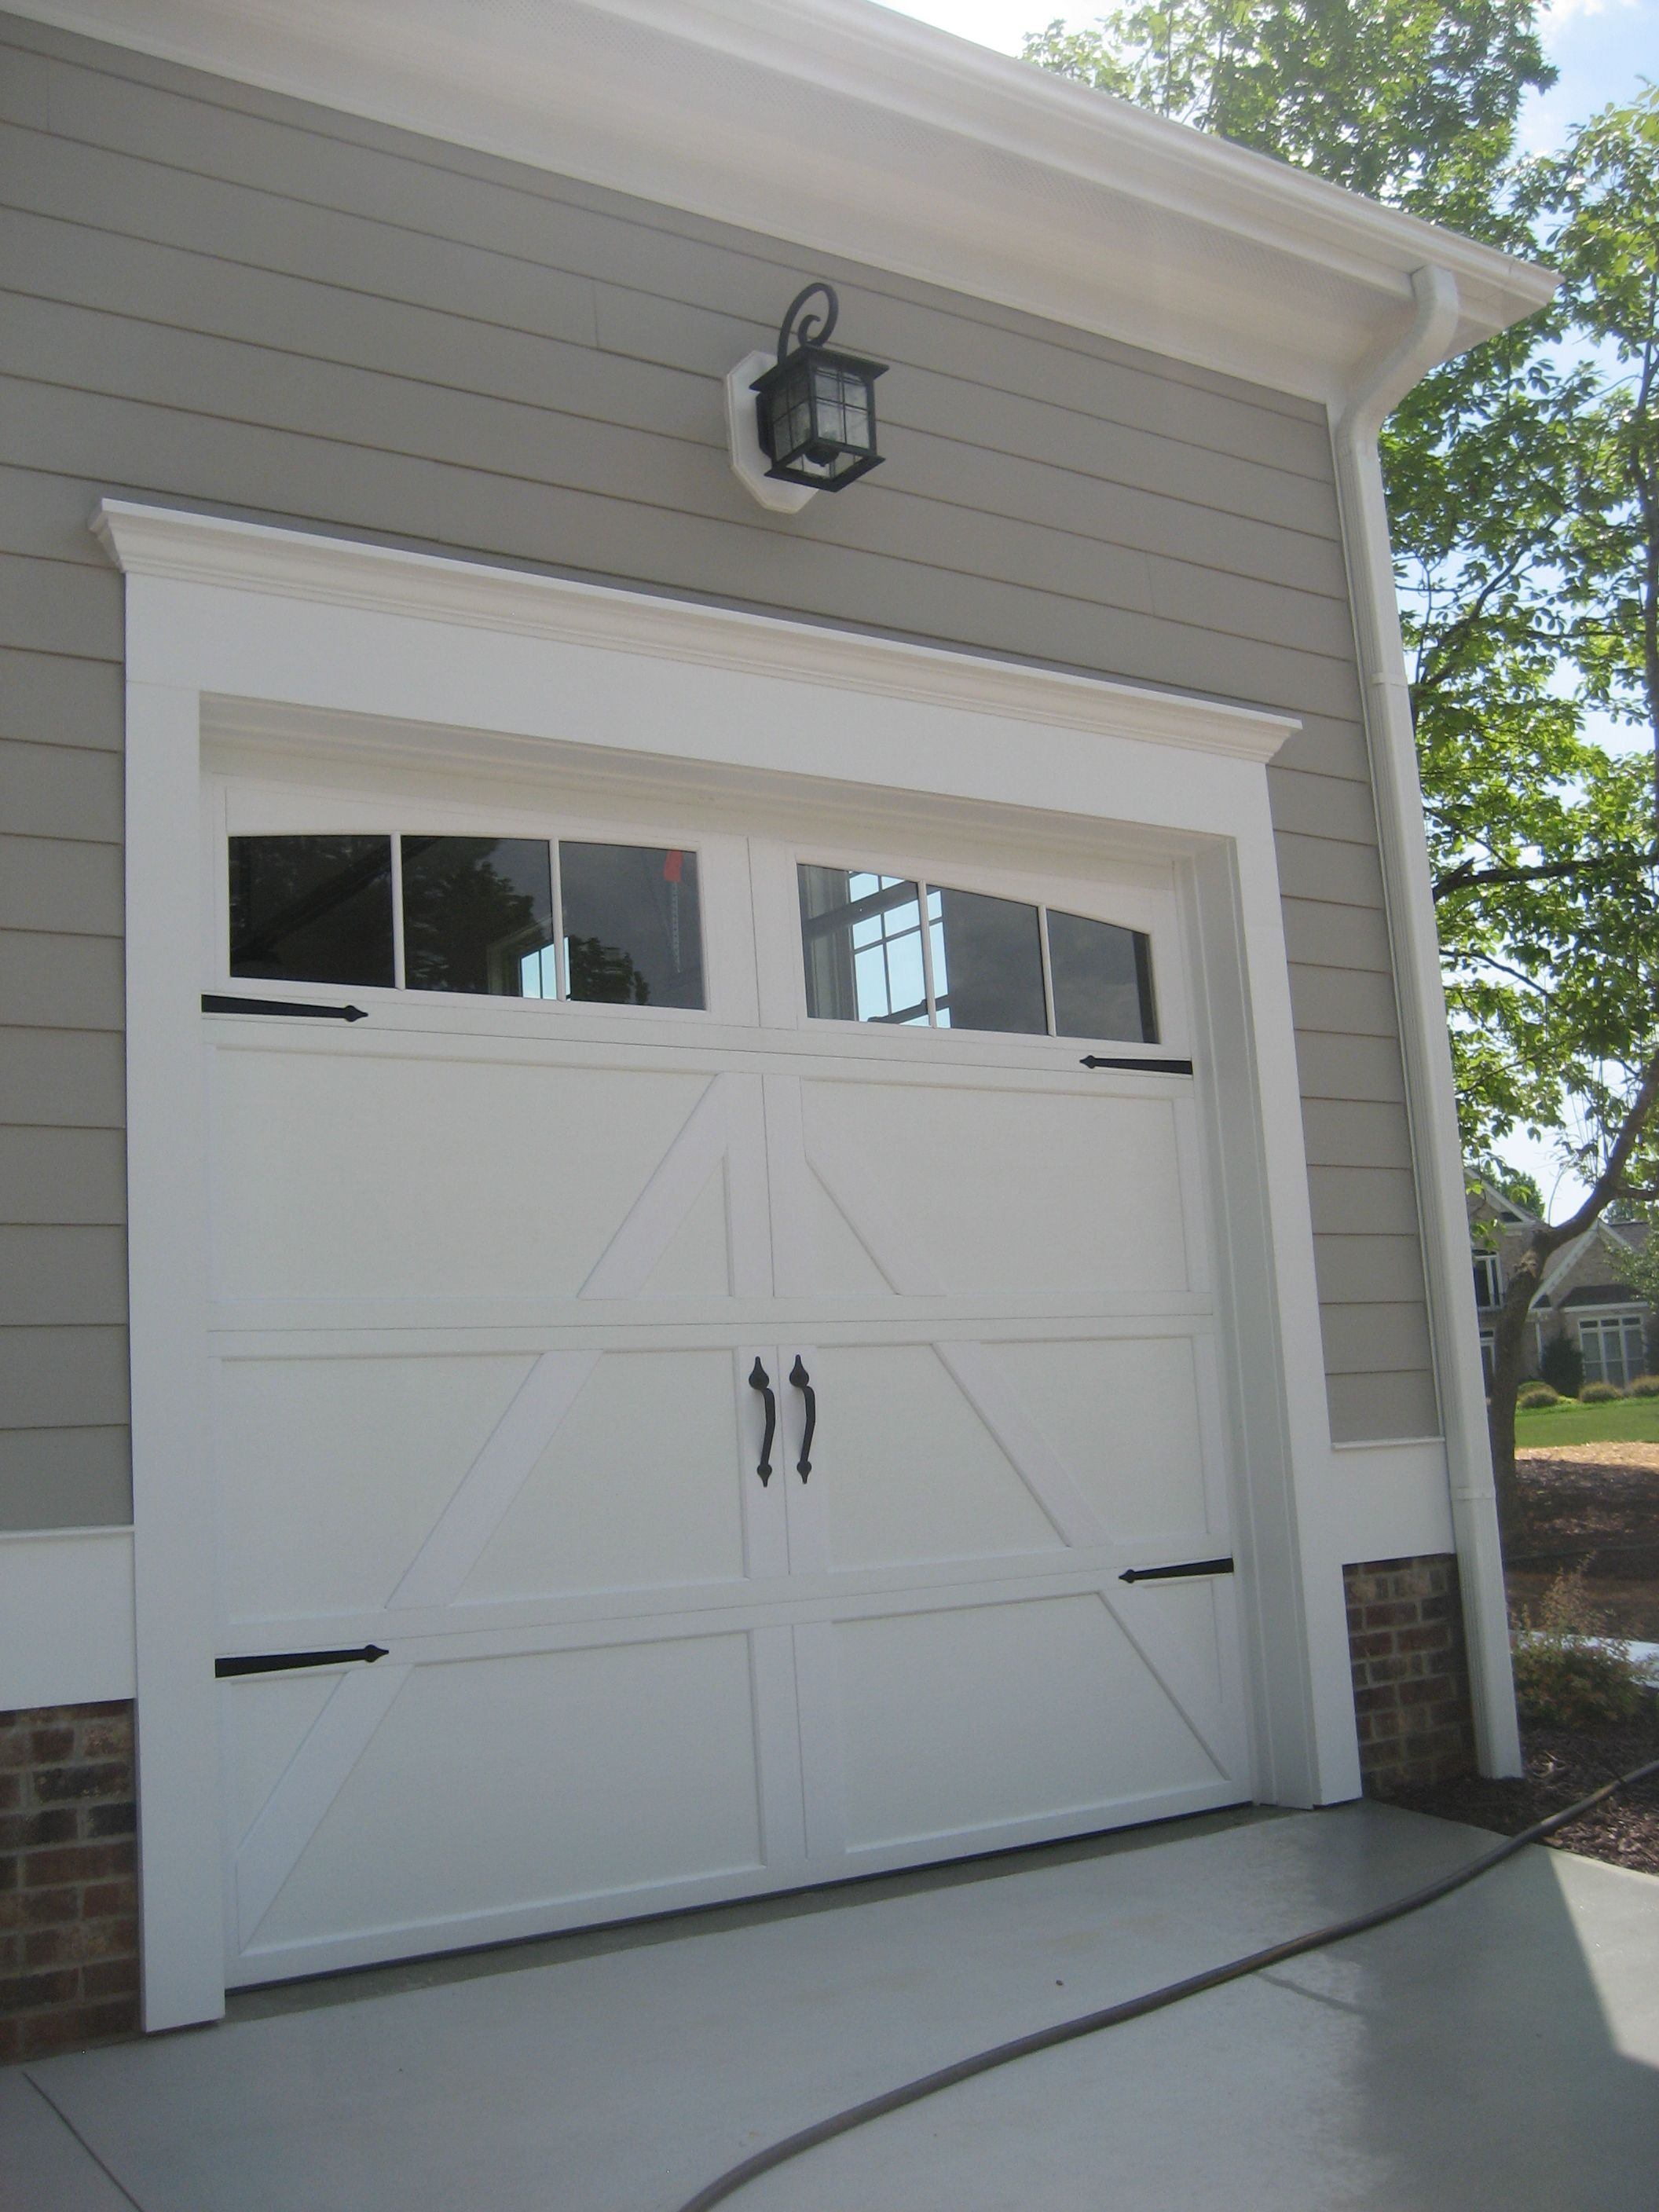 Add trim to garage doorAdd hardware to you boring garage door to give it a quick update